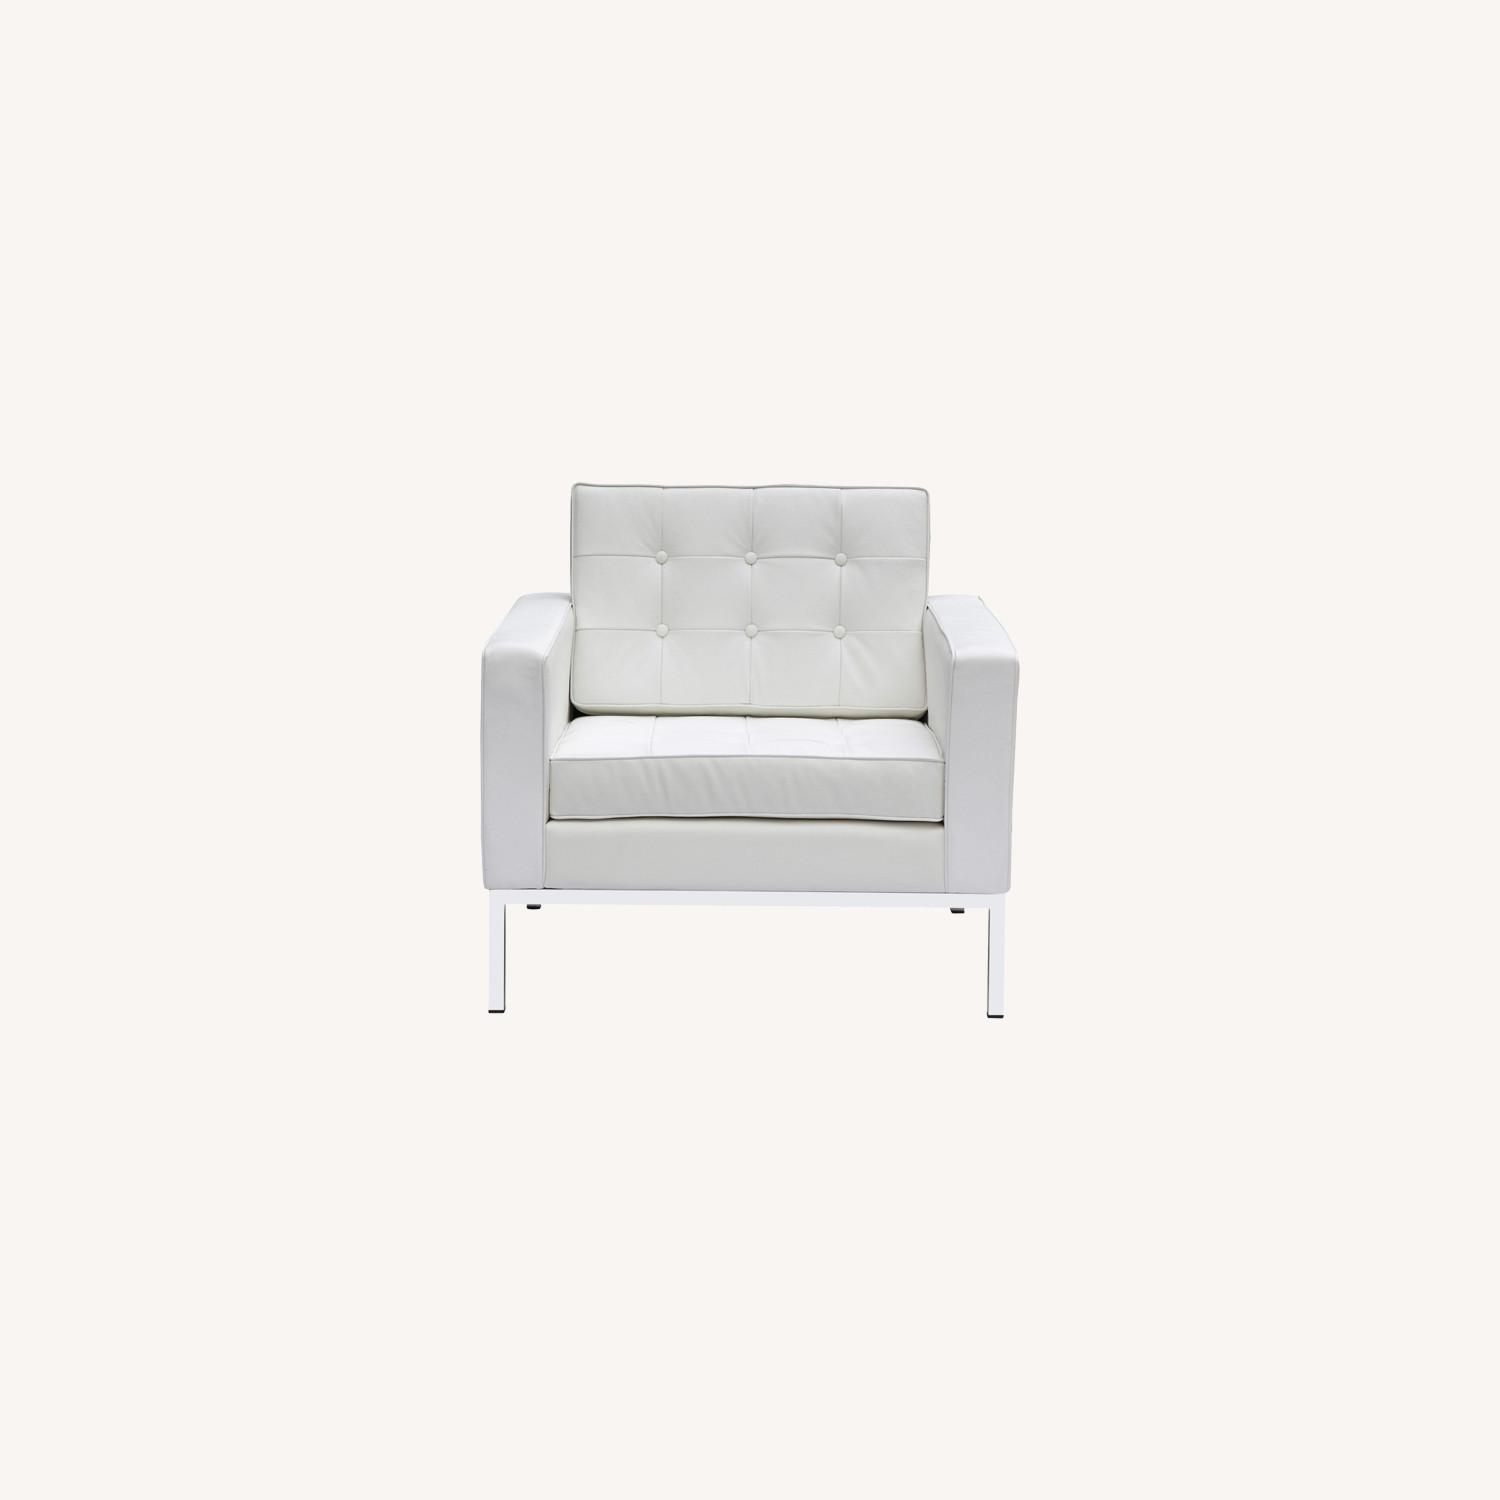 Modern Arm Chair In White Italian Leather - image-7